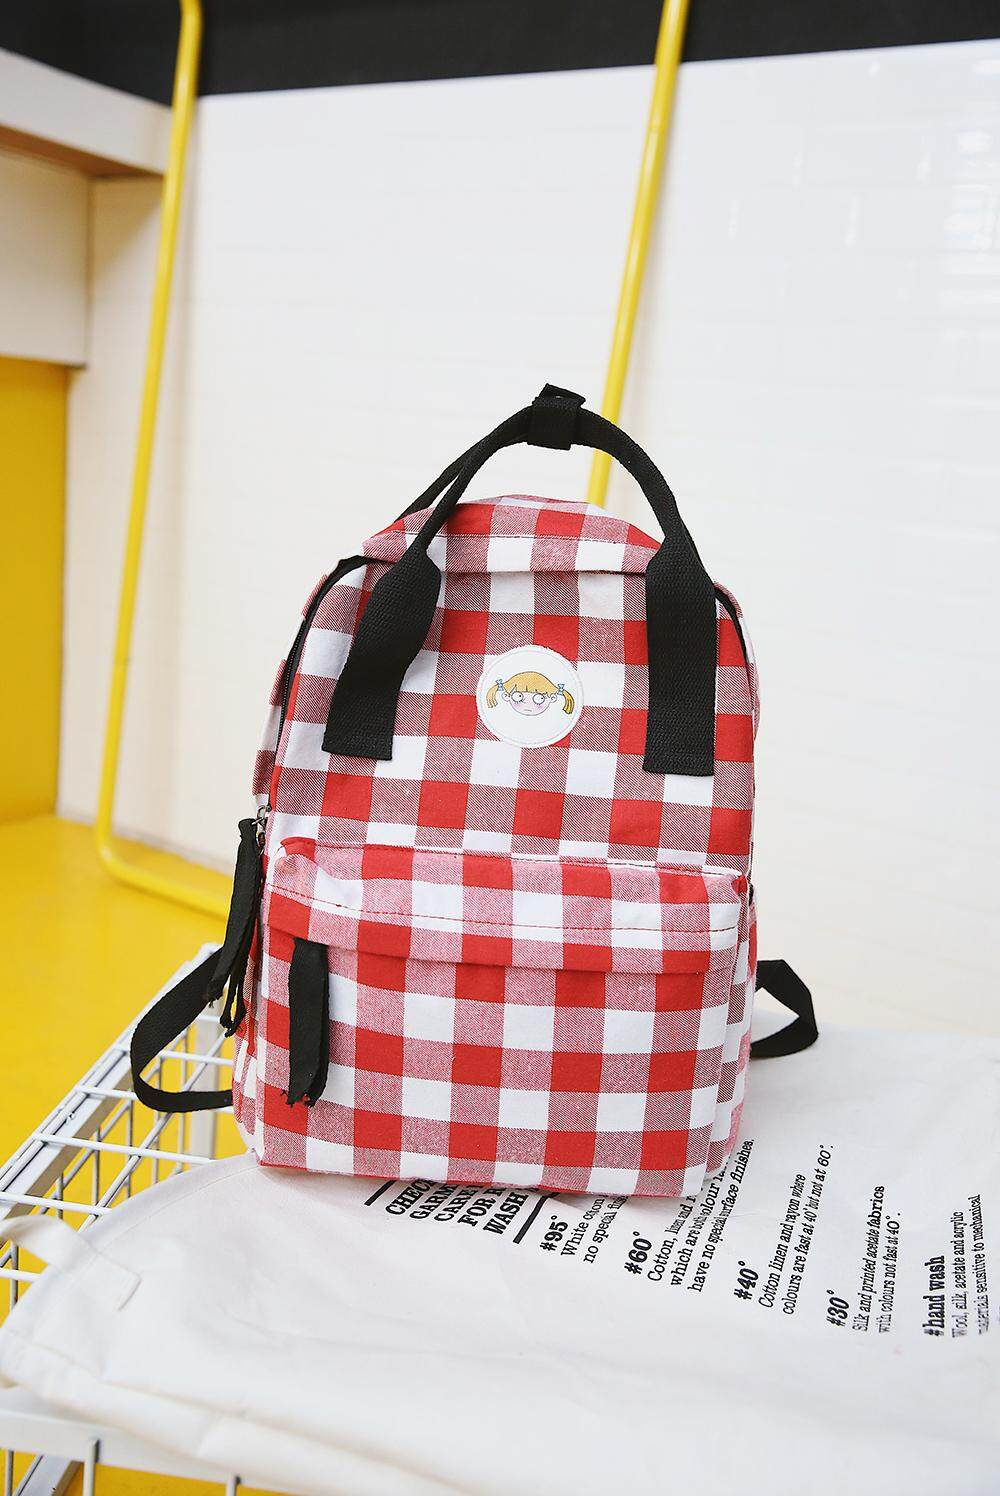 Buy Sell Cheapest Satto Feeling Fresh Best Quality Product Deals Whitening Body Lotion Triple Moisturizer 200ml Red Style Ahan Ban The Pastoral Romantic Check Cotton Backpack Small Delightfully And Outdoor Gui Honey Breeze High School Students